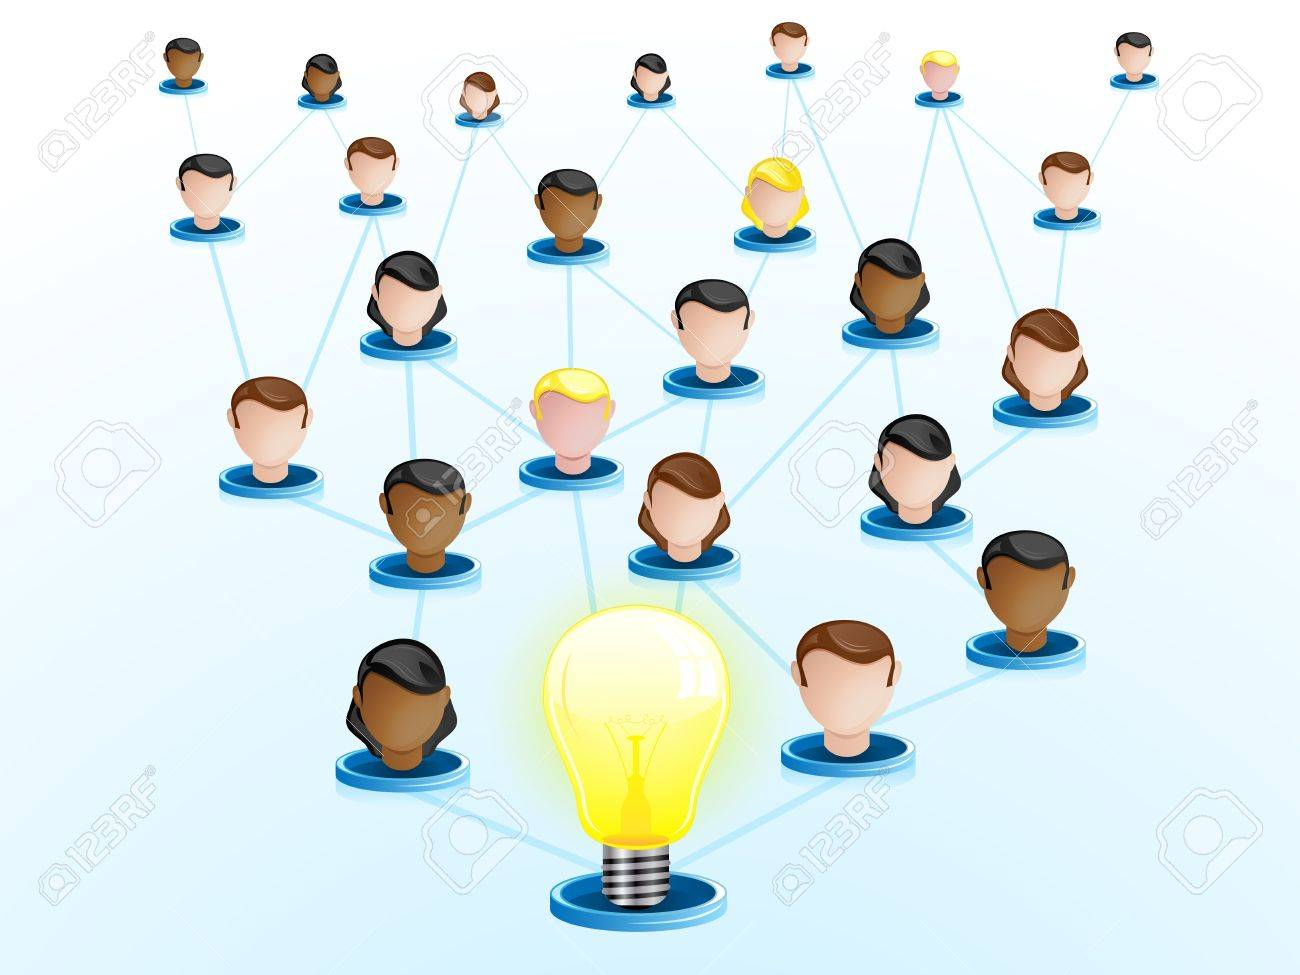 Vector - Creativity Network Crowdsourcing Stock Vector - 10693667